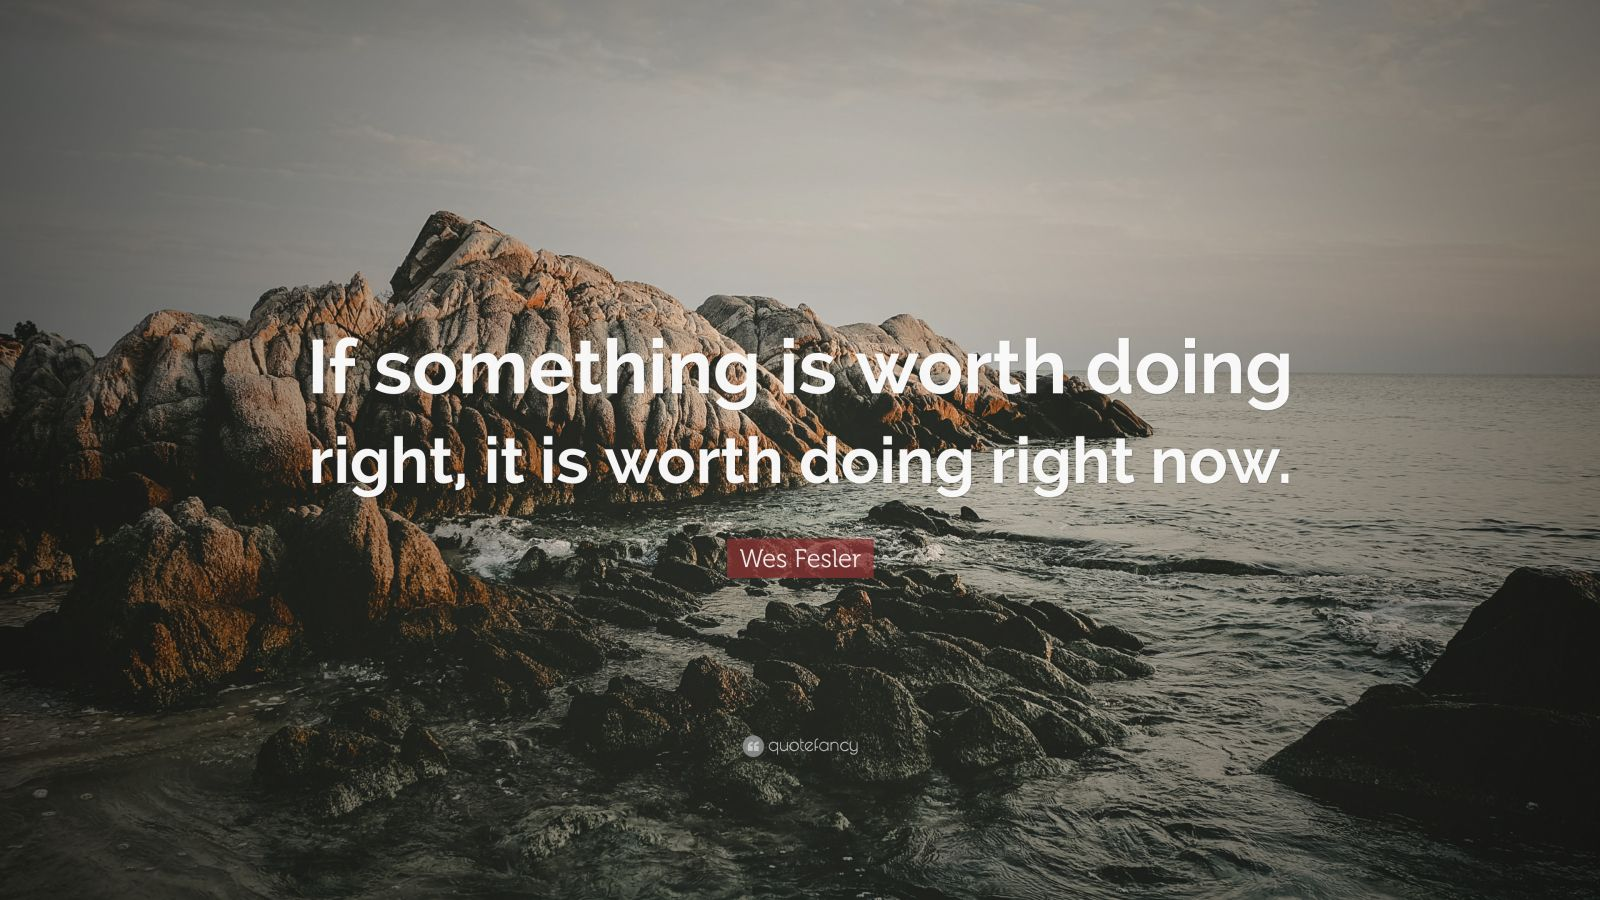 """Wes Fesler Quote: """"If something is worth doing right, it is worth doing right now."""""""